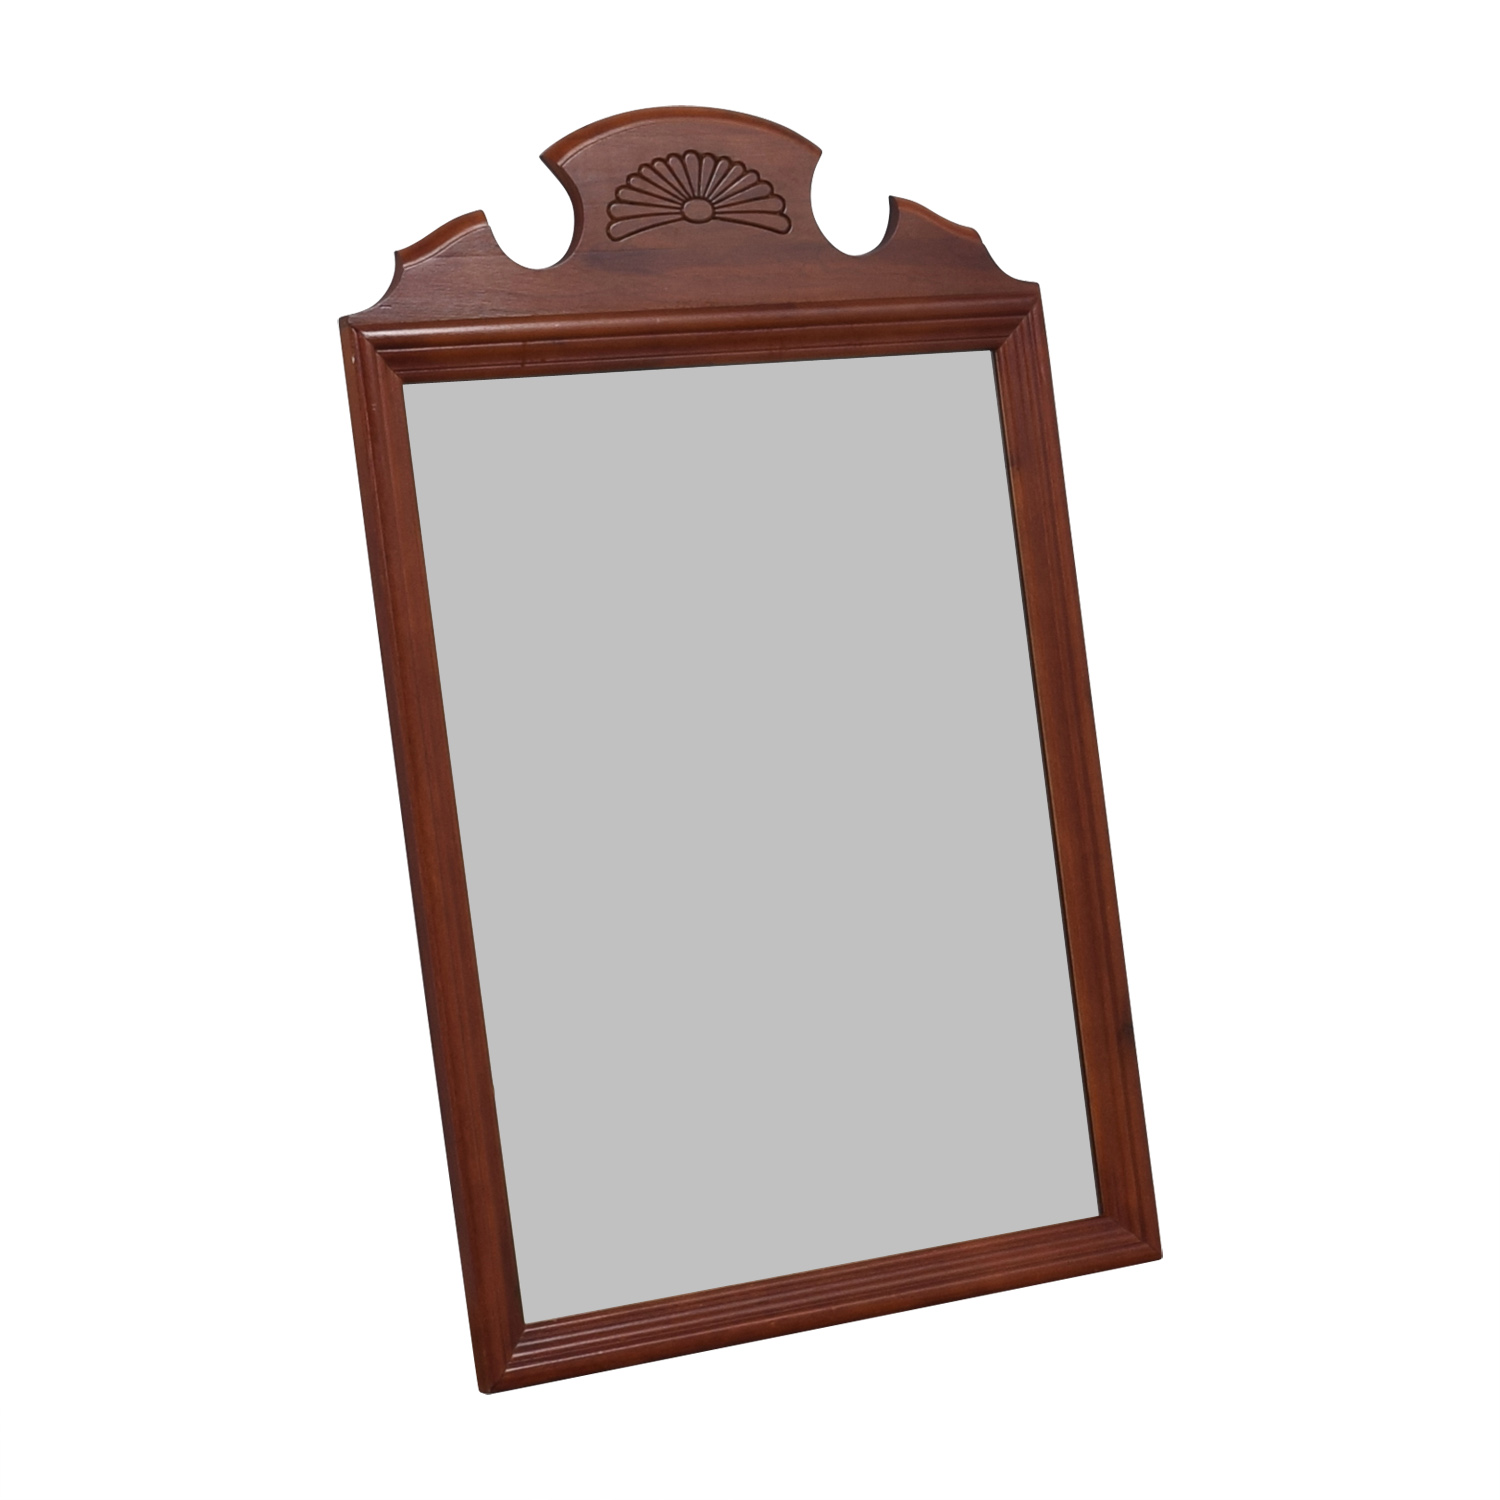 Carved Wood Framed Mirror dimensions